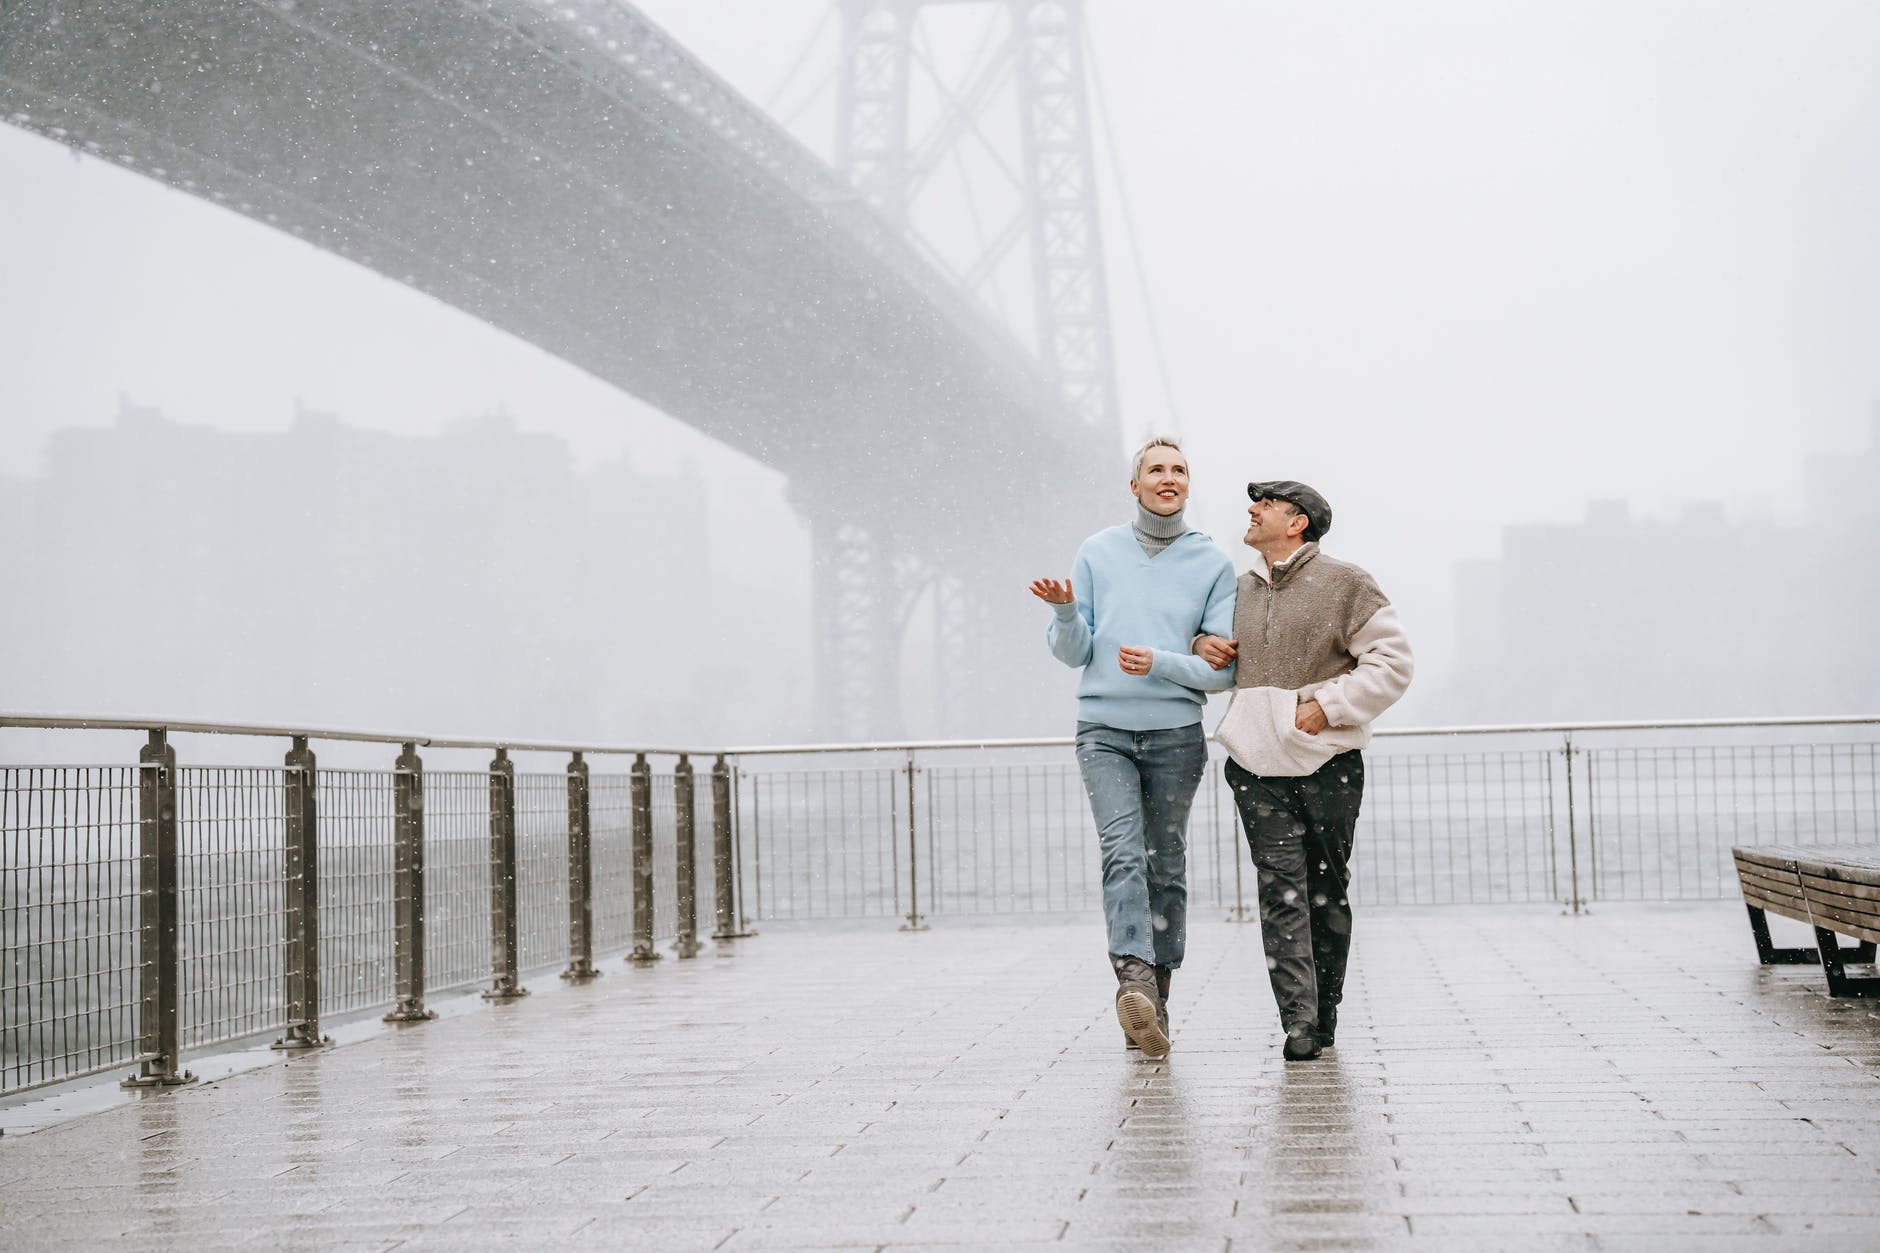 cheerful couple walking on embankment in snowy weather